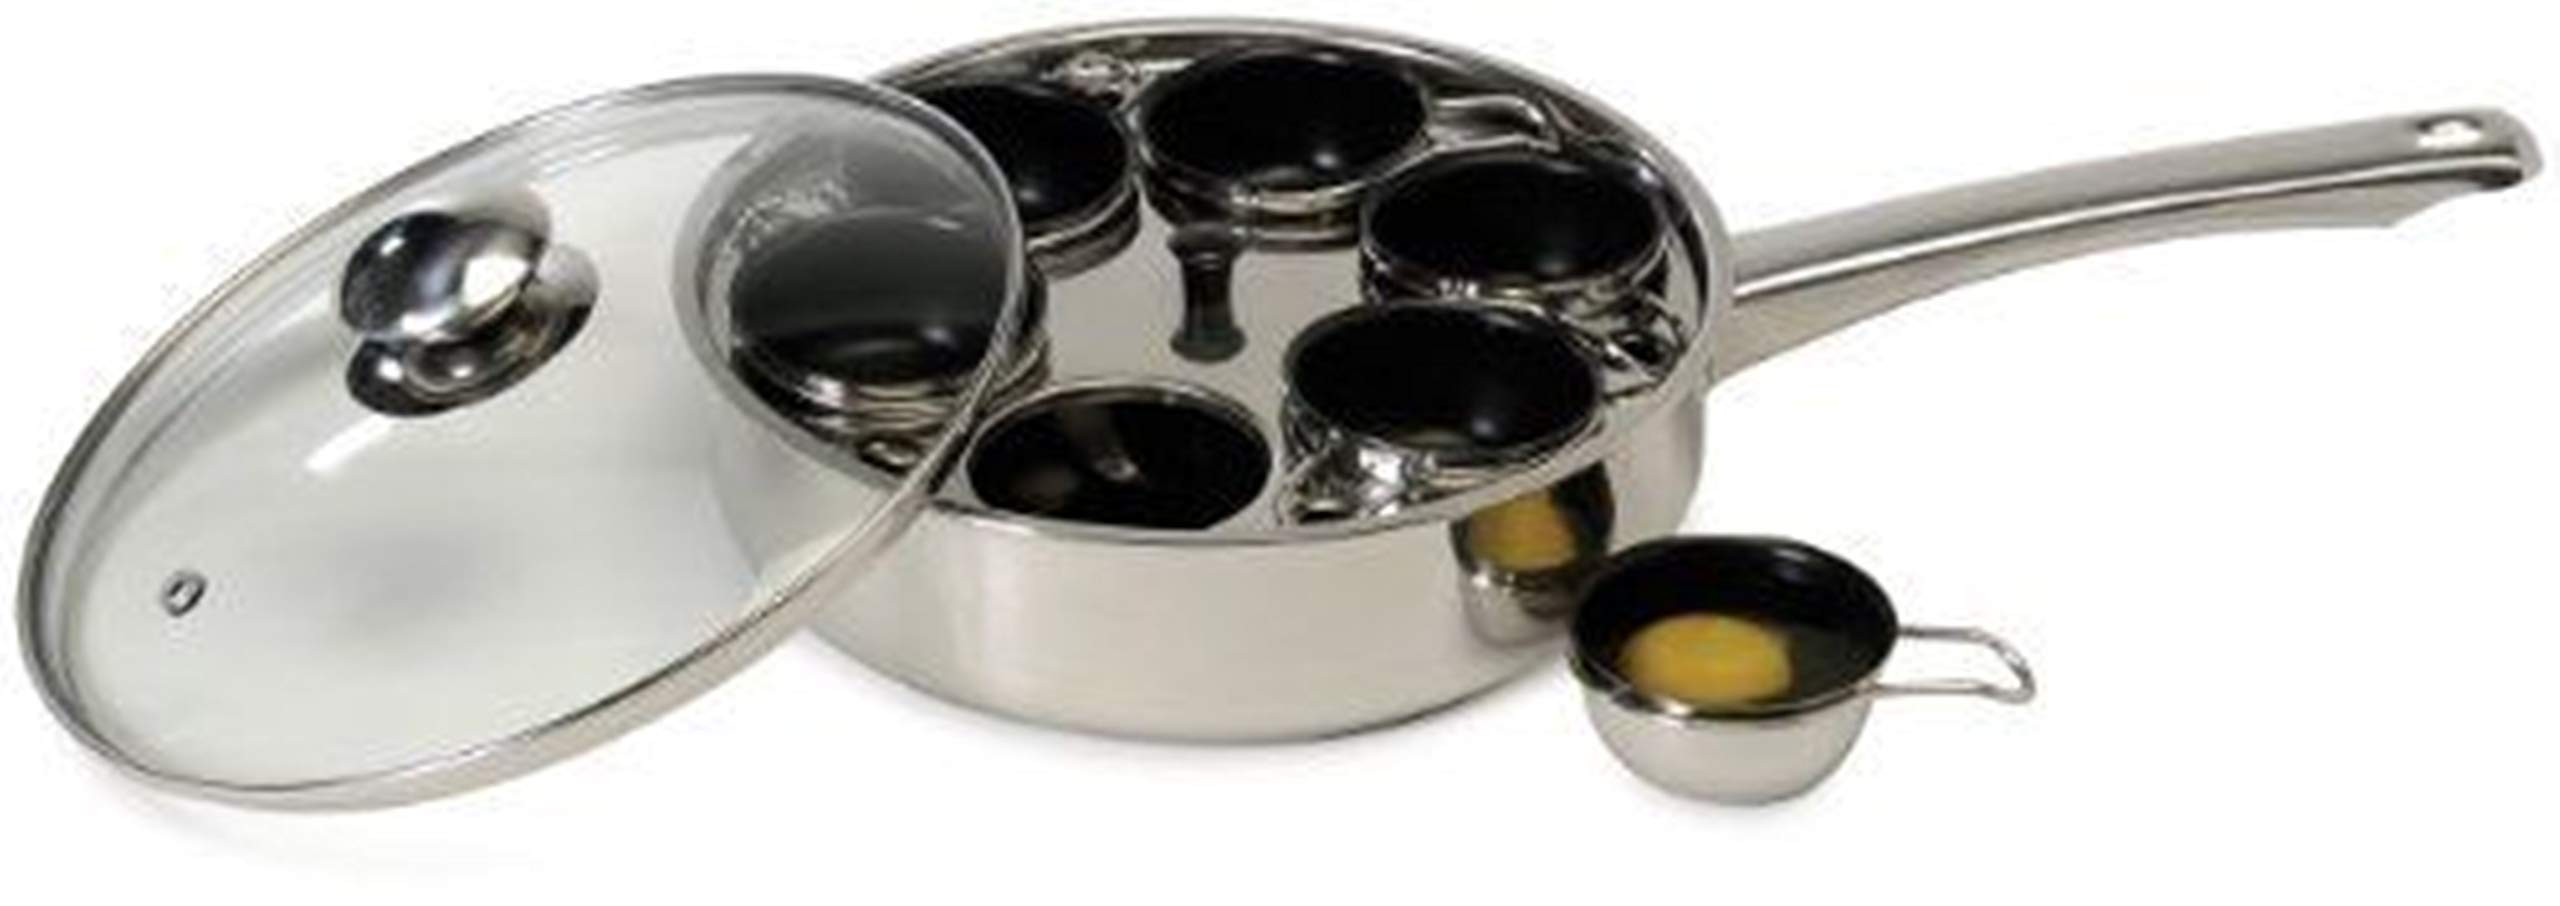 Egg Poacher Pan 6 Cups Cooking Coated Cookware Kitchen Fry Poached Eggs Skillet